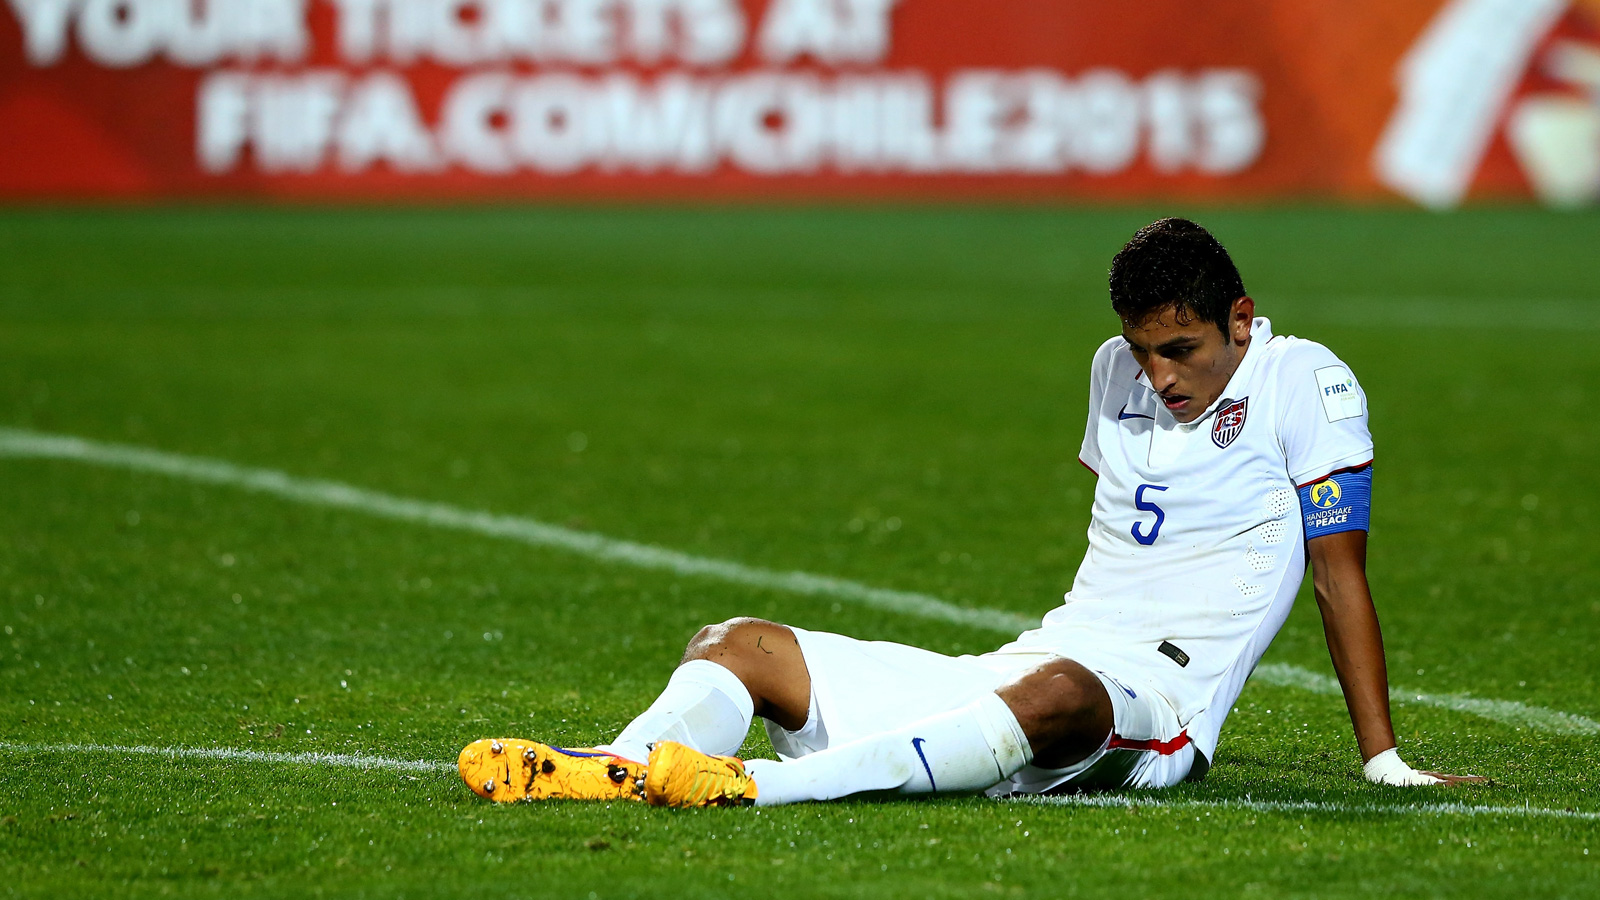 USA U-17 captain Hugo Arellano sits dejected after a 4-1 loss to host Chile eliminated the Americans from the World Cup in the group stage.